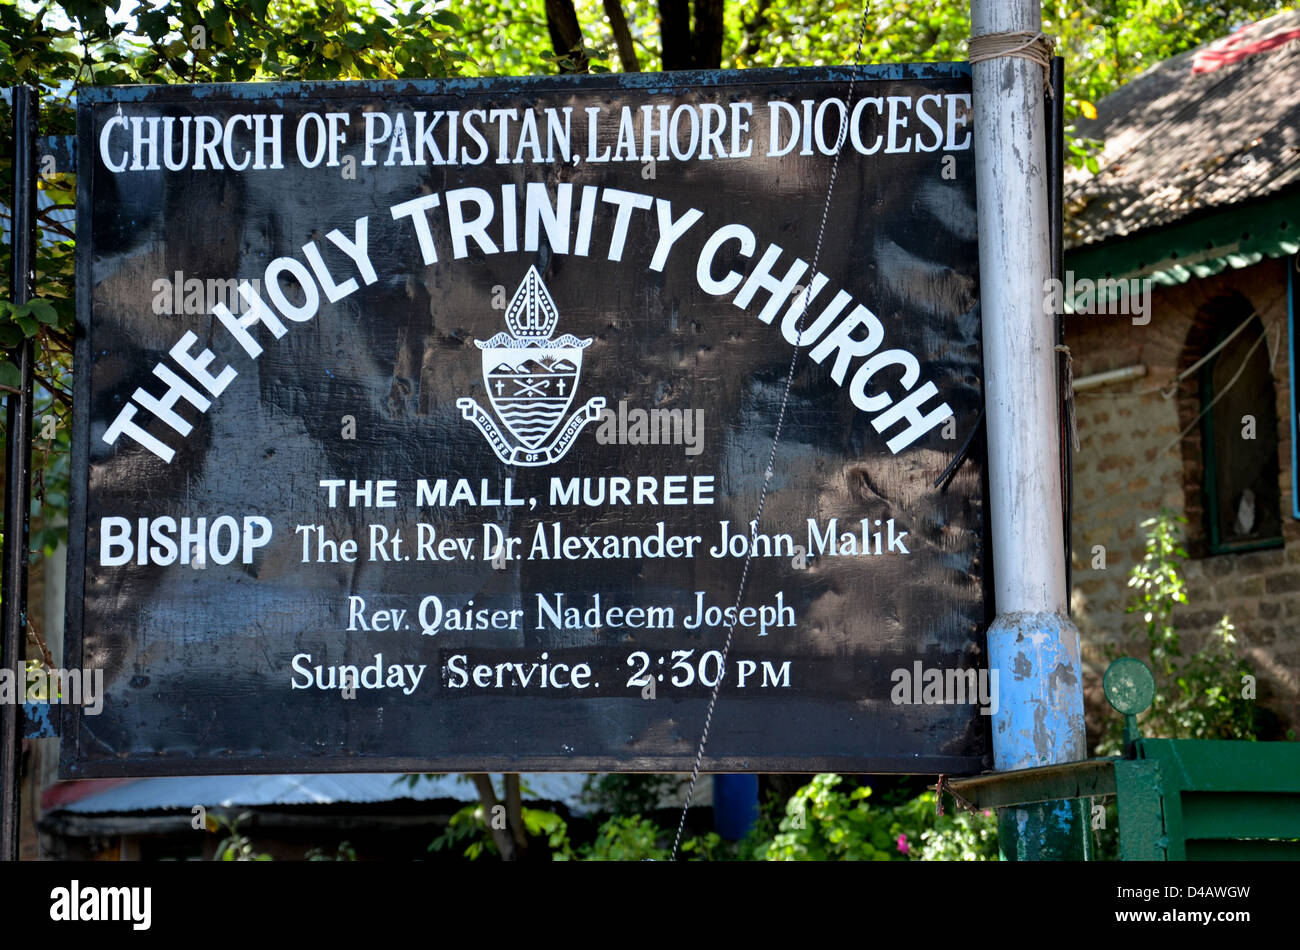 Holy Trinity Church of Pakistan Lahore Diocese - Stock Image